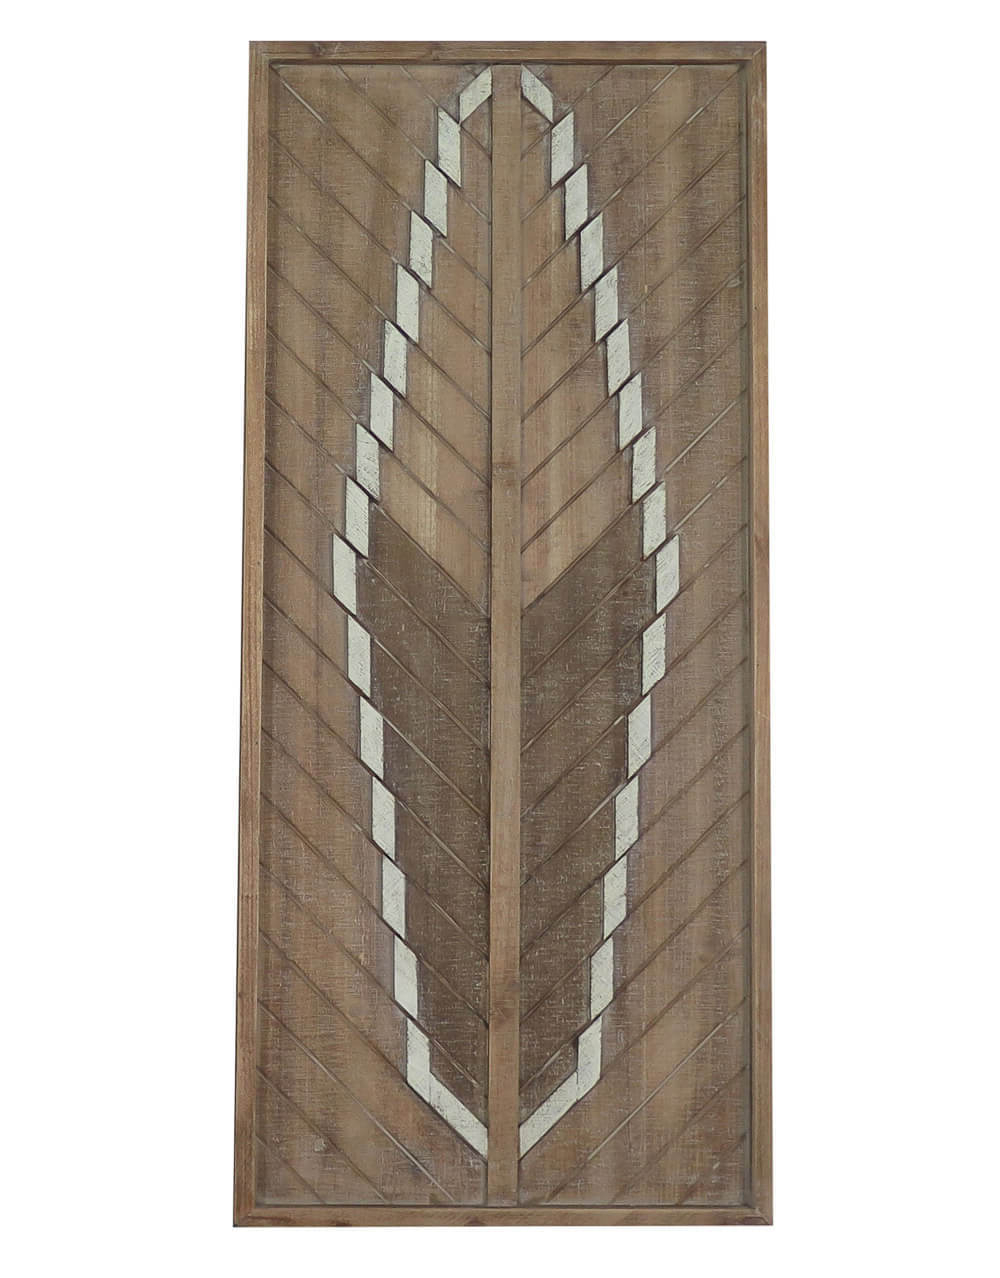 Best And Newest Buy Arrow Feather Detail Large Frame Wall Tribal Art Decor Regarding Brown Metal Tribal Arrow Wall Decor (Gallery 20 of 20)